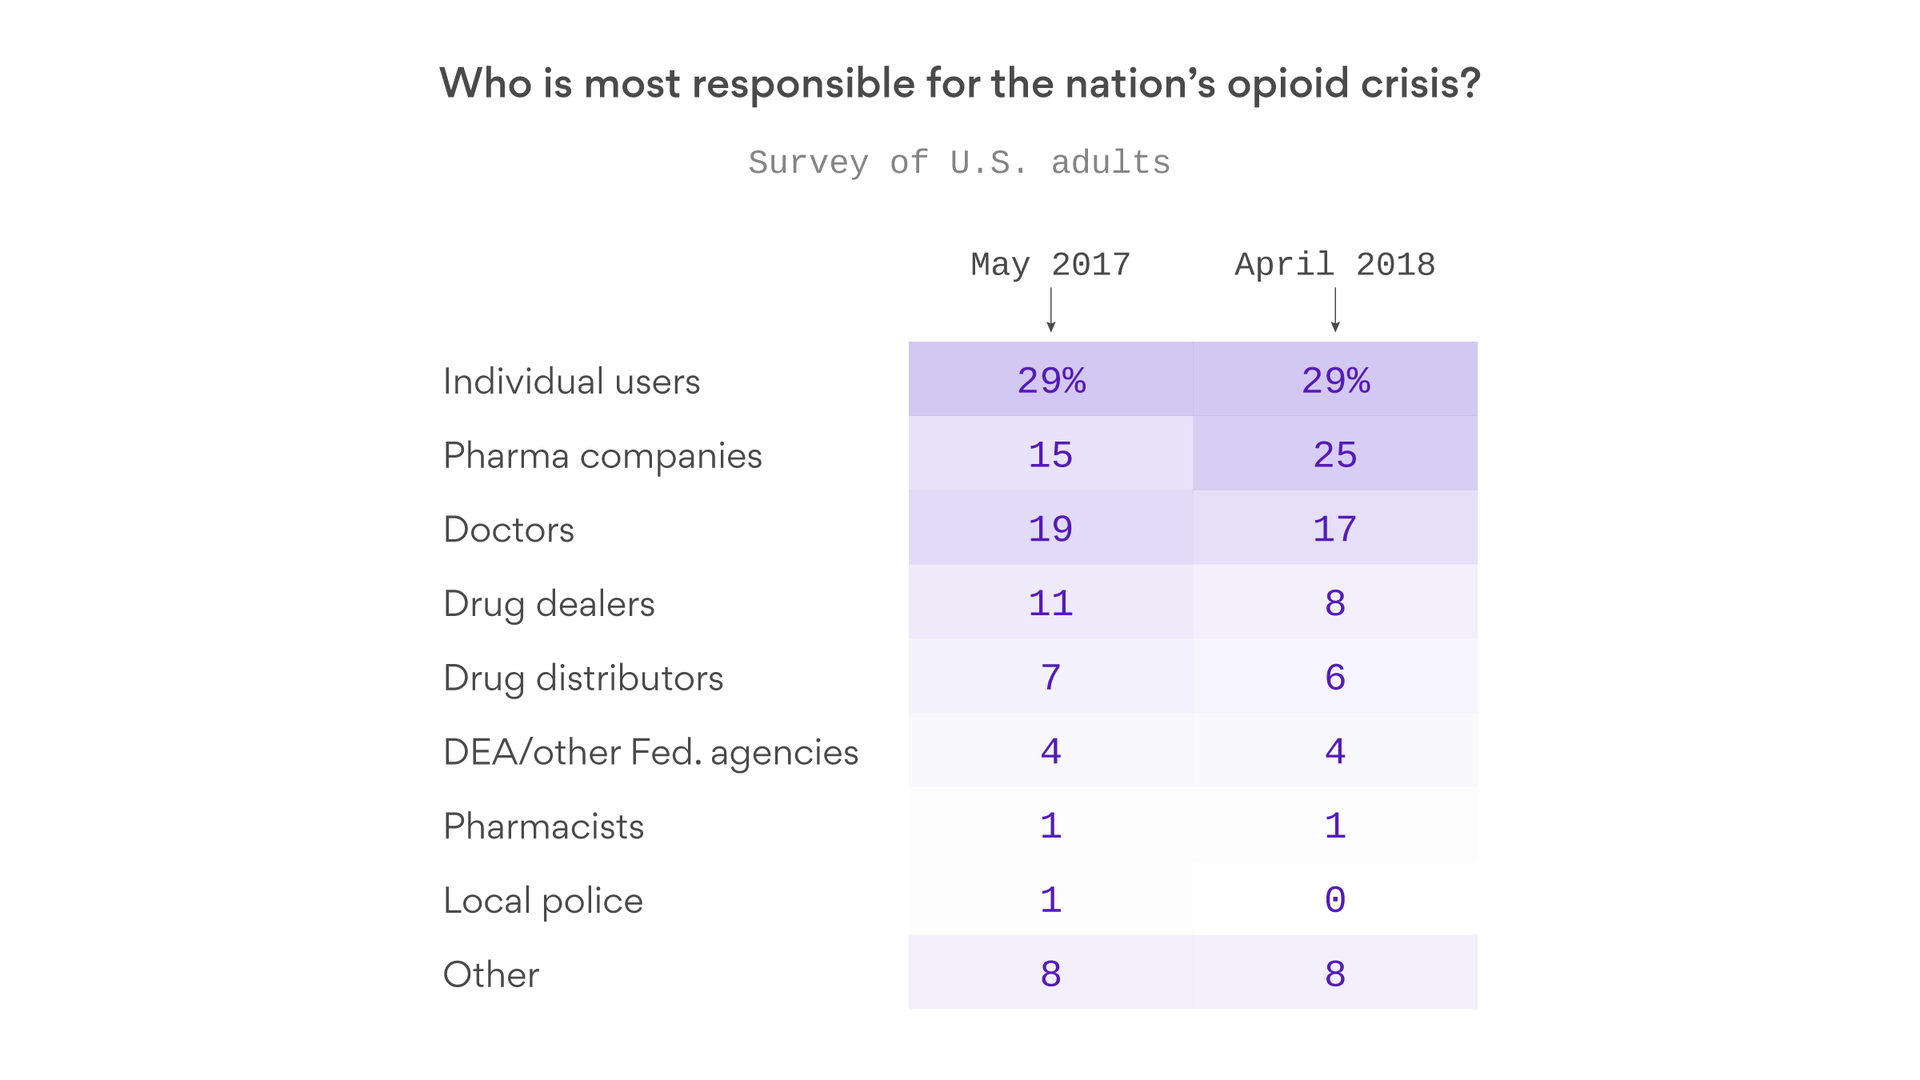 More people are blaming the opioid crisis on drug companies